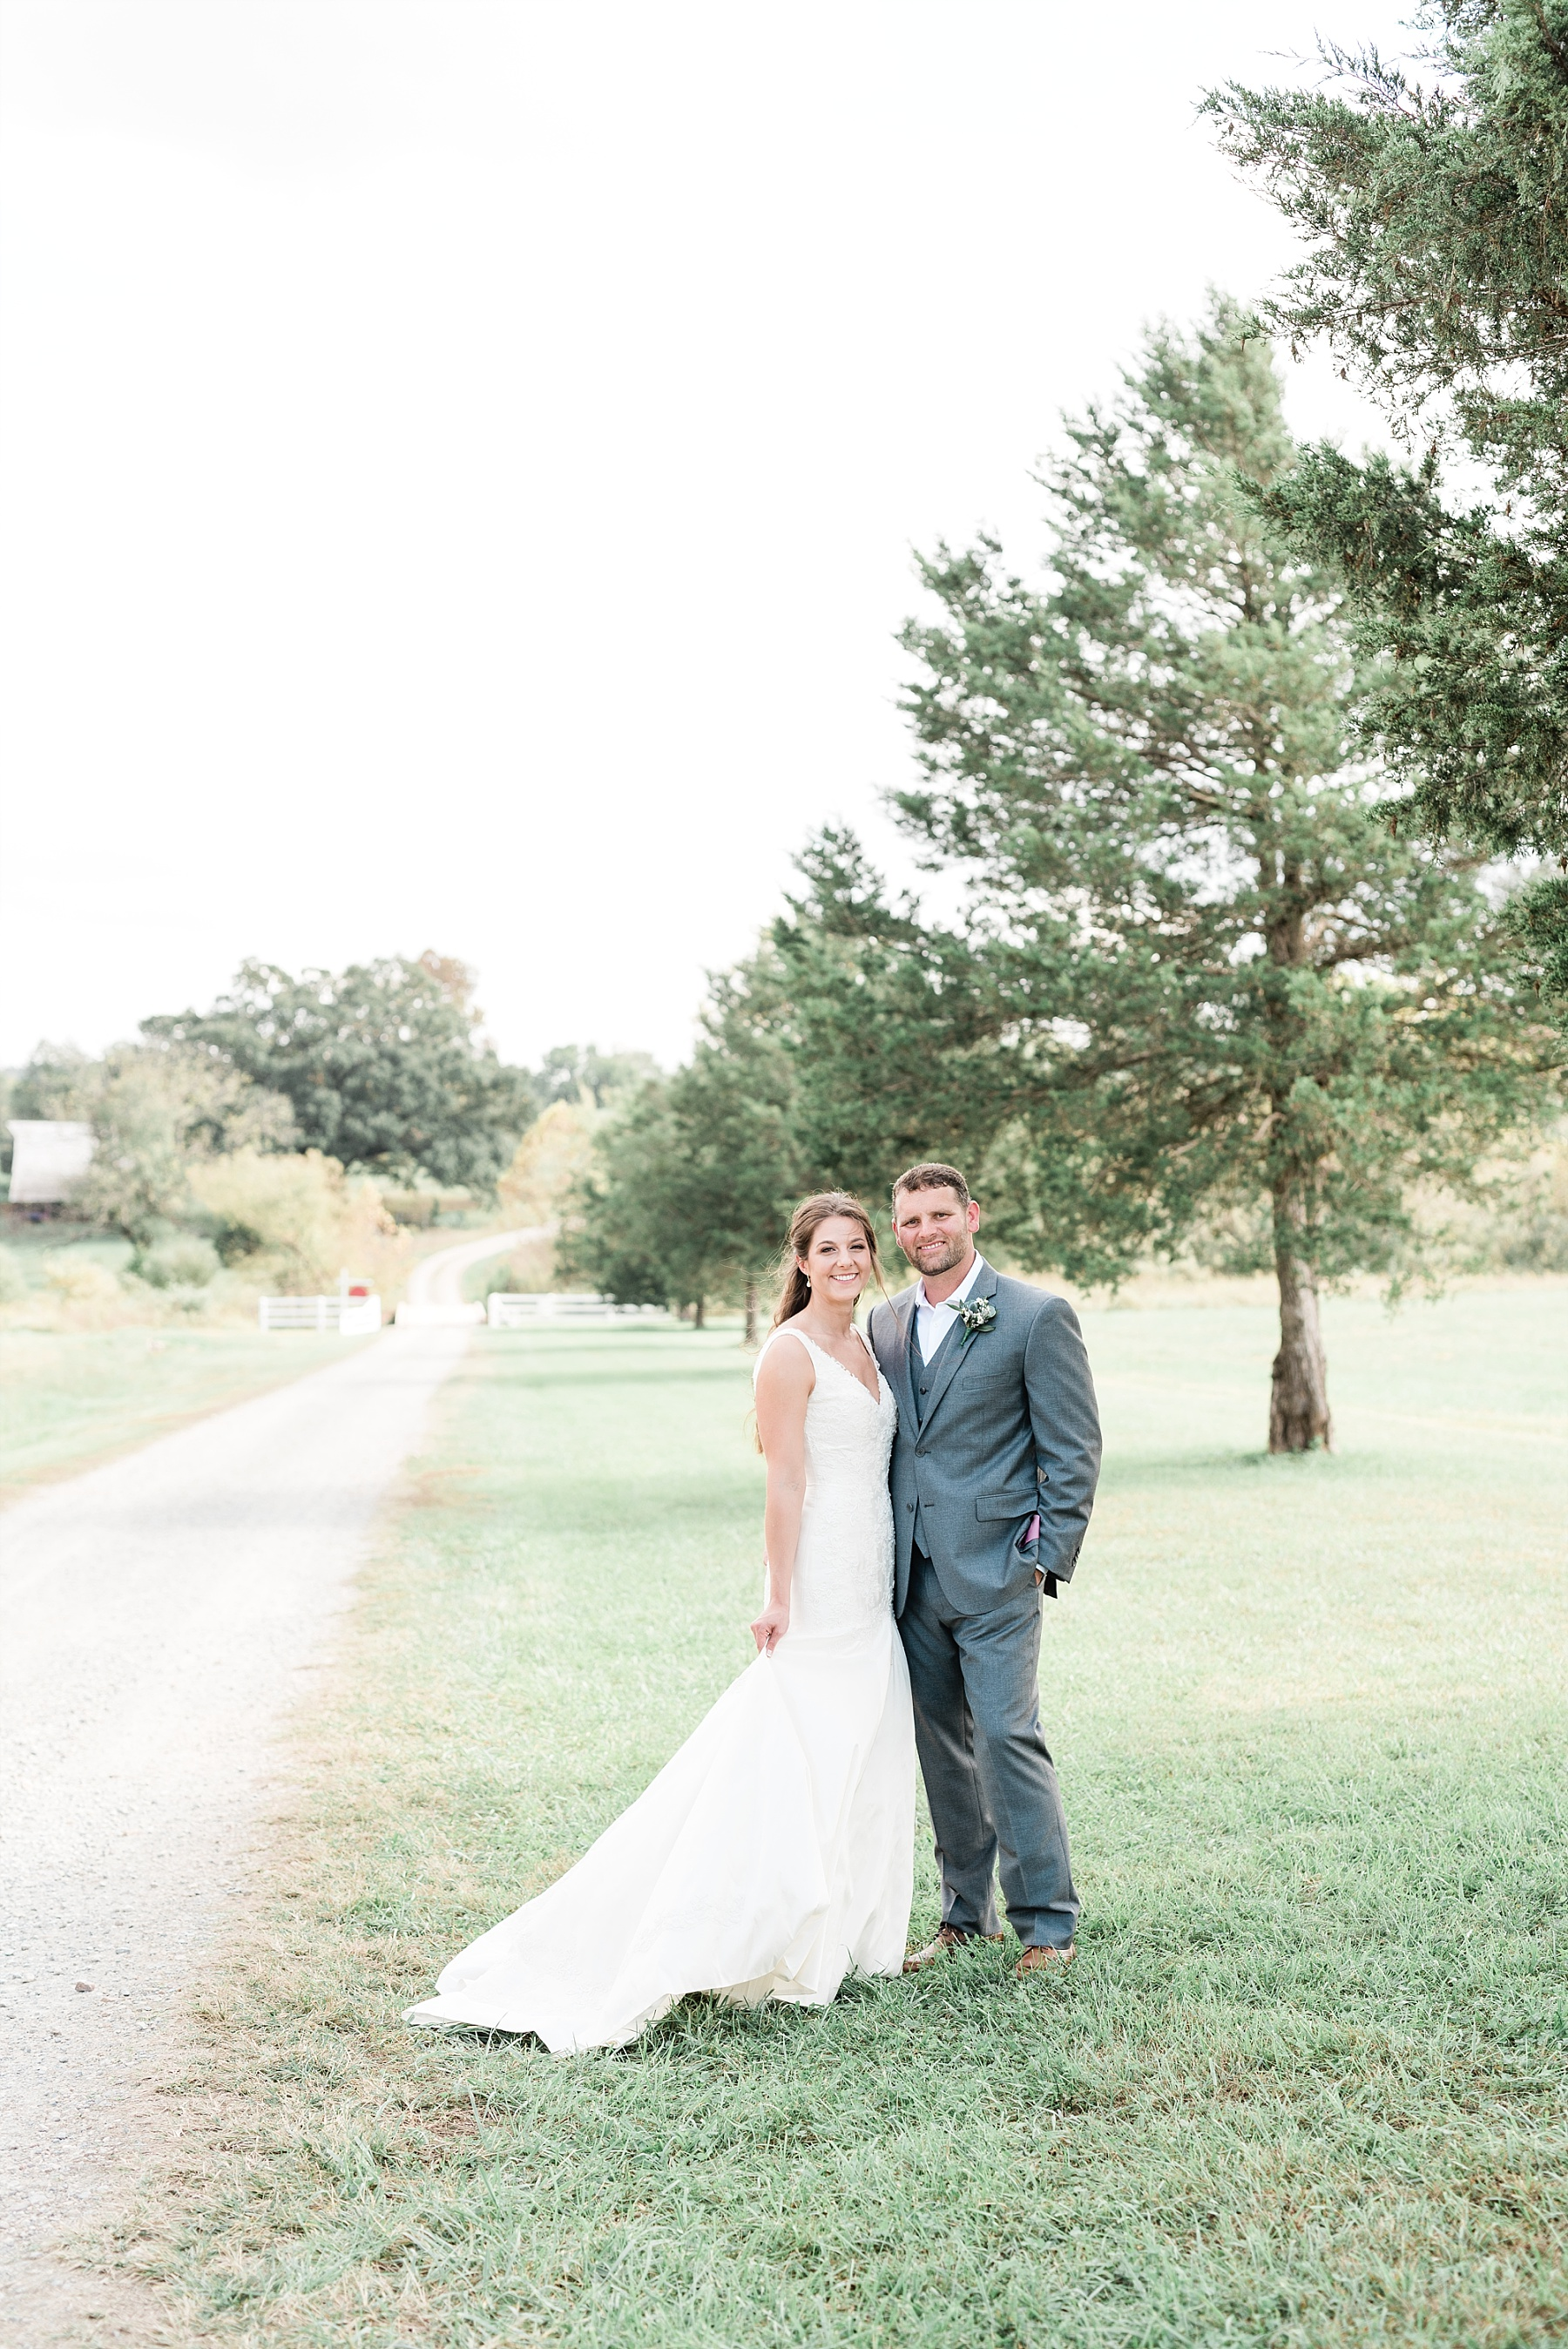 Fine Art Sunset Themed Wedding in Autumn at Dodson Orchards by Kelsi Kliethermes Photography_0035.jpg